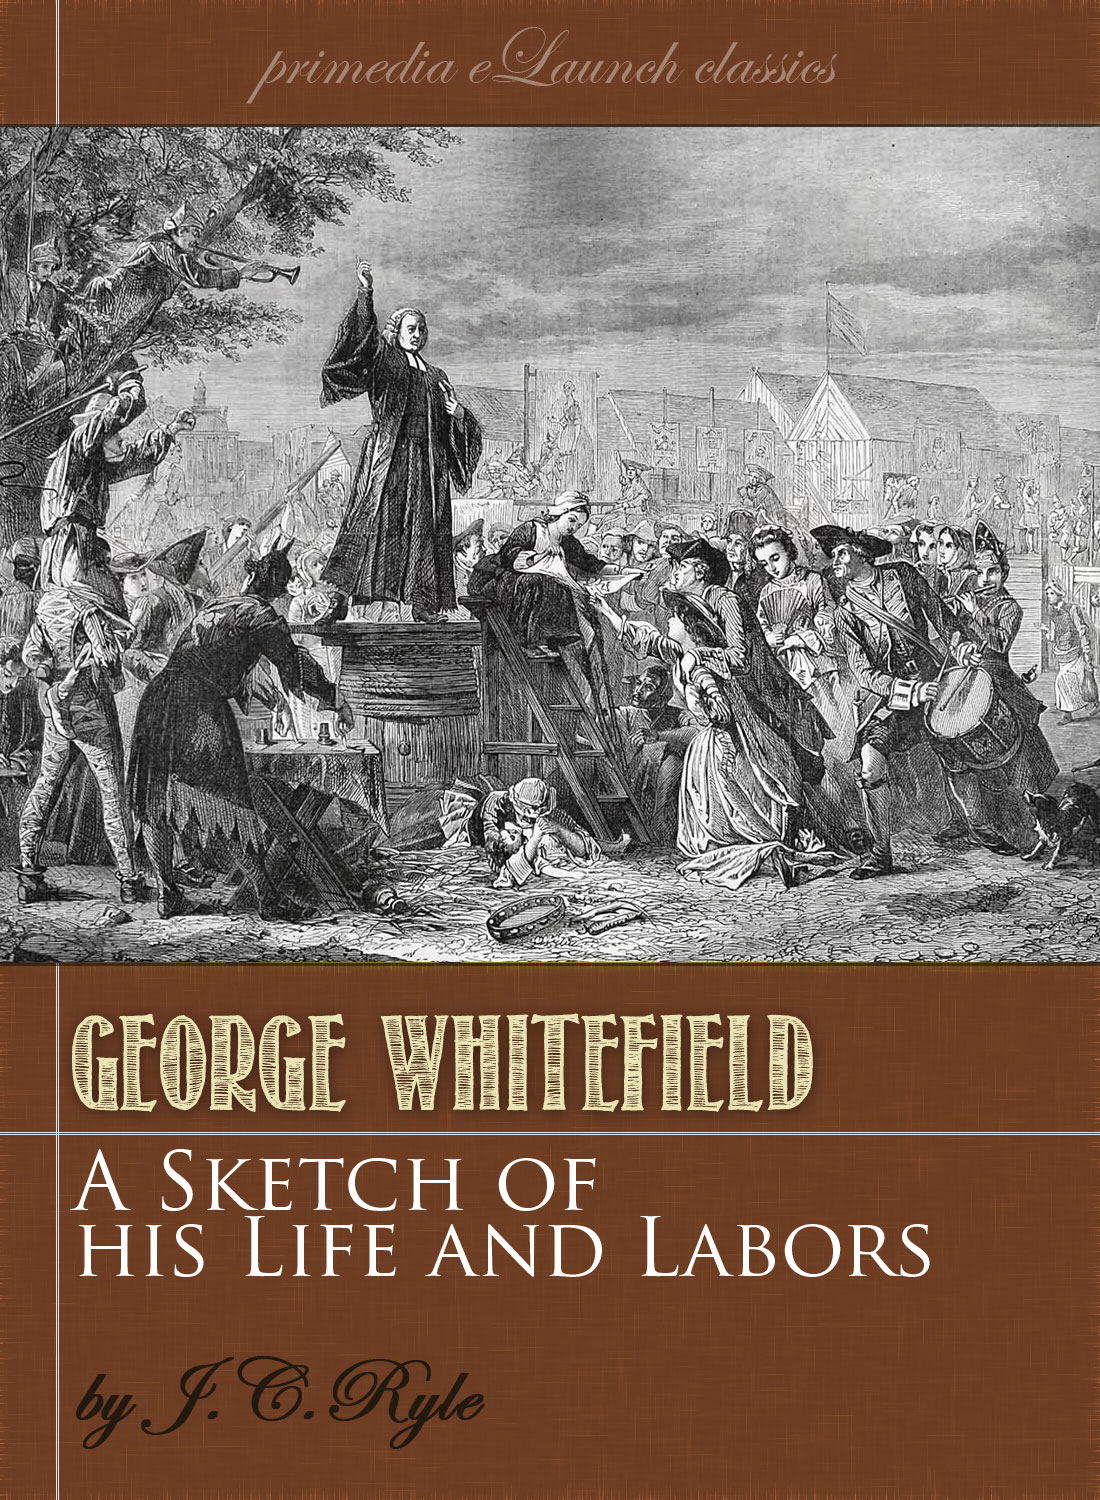 A Sketch of the Life and Labors of George Whitefield